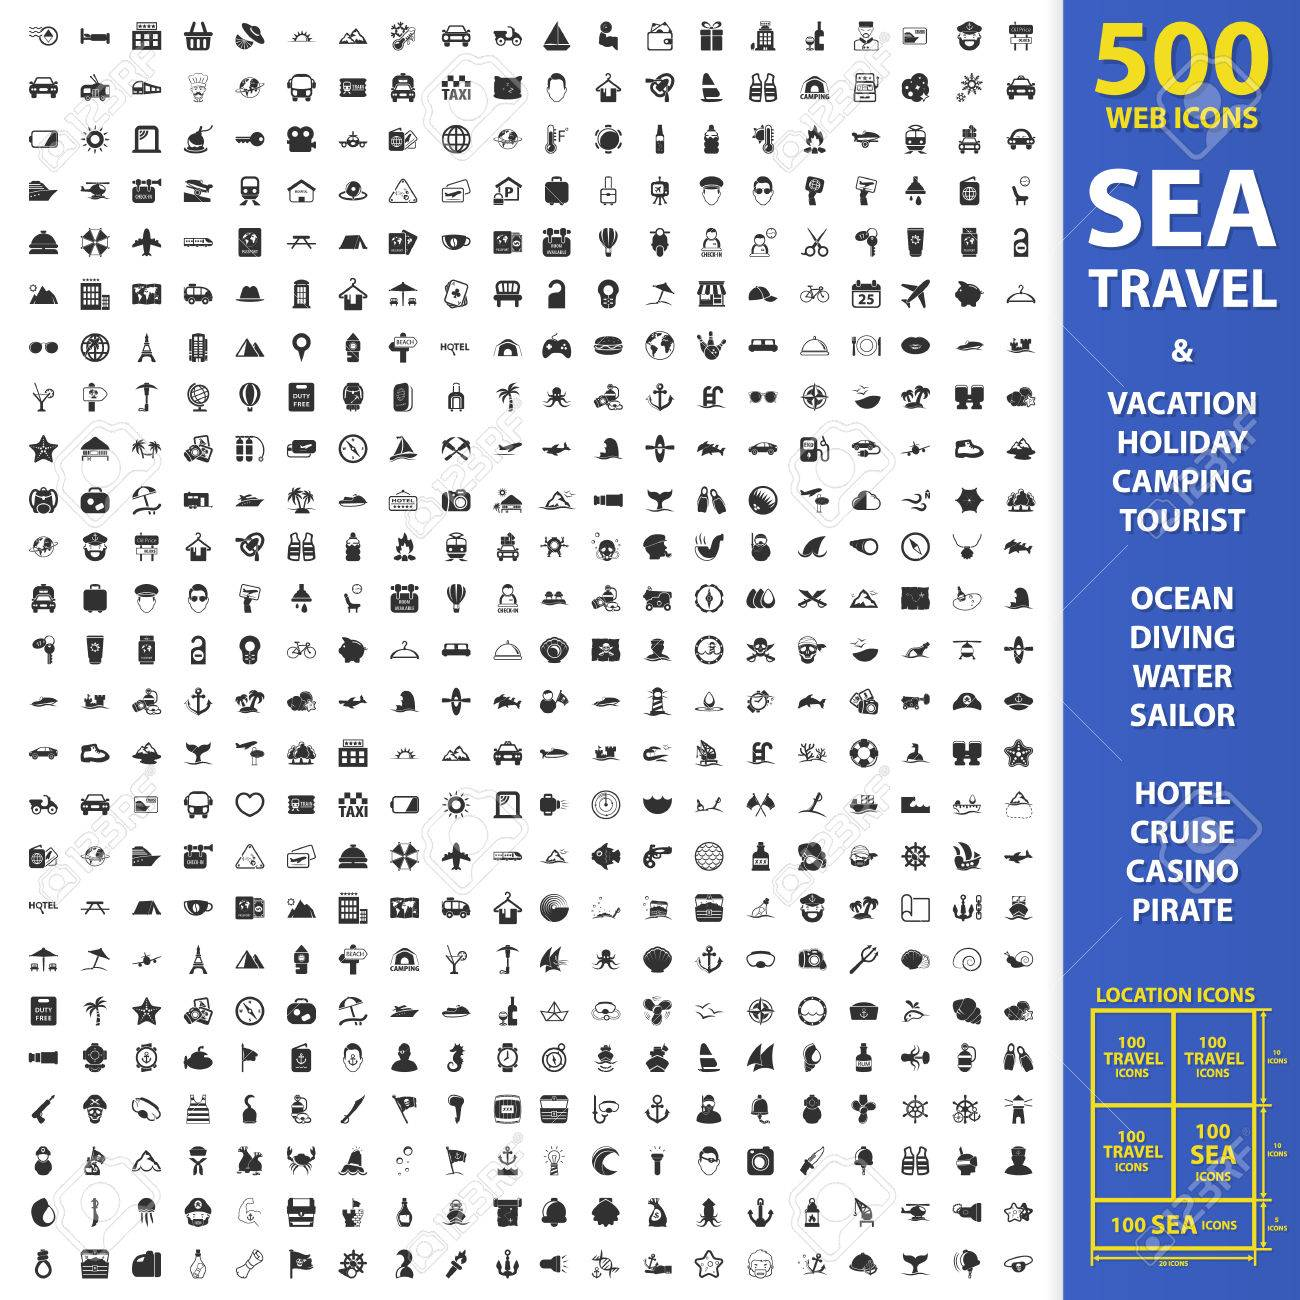 Sea, travel, vacation set 500 black simple icons. Holiday, camping, tourist icon design for web and mobile device. - 52678405